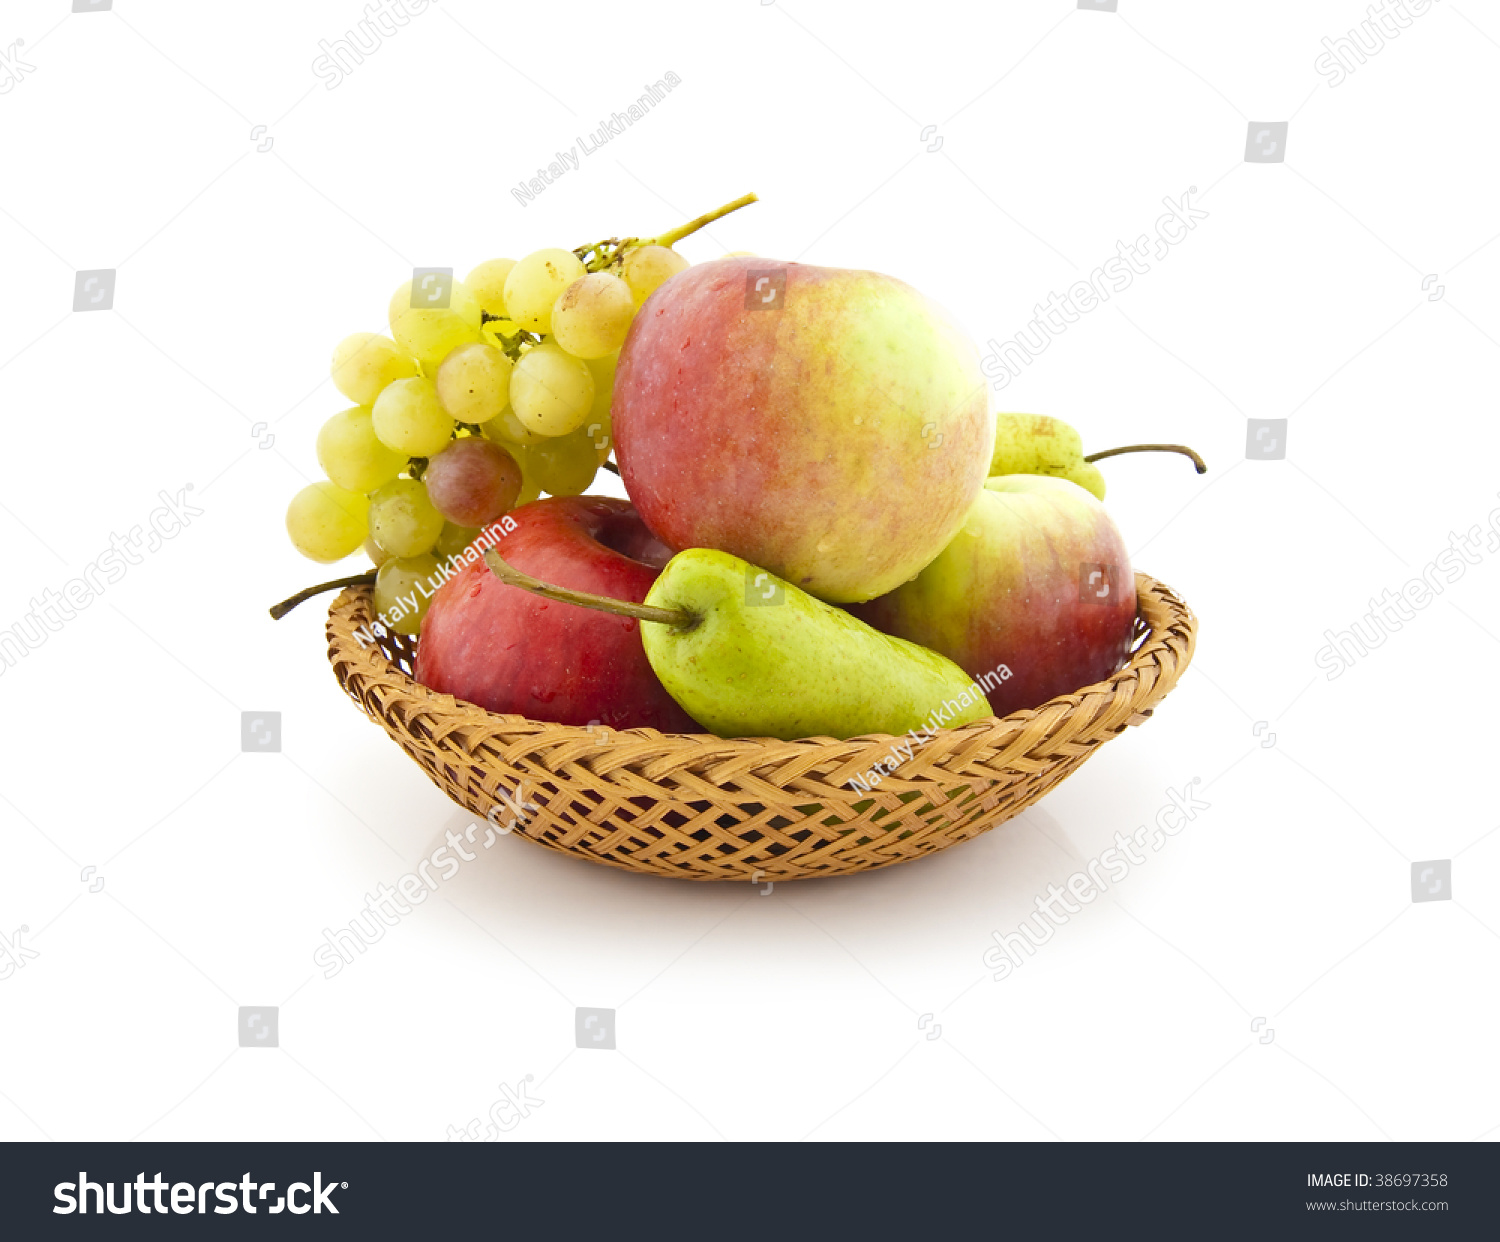 Apples, Pears And Grapes Appetizing Autumn Fruit Stock Photo 38697358 ...